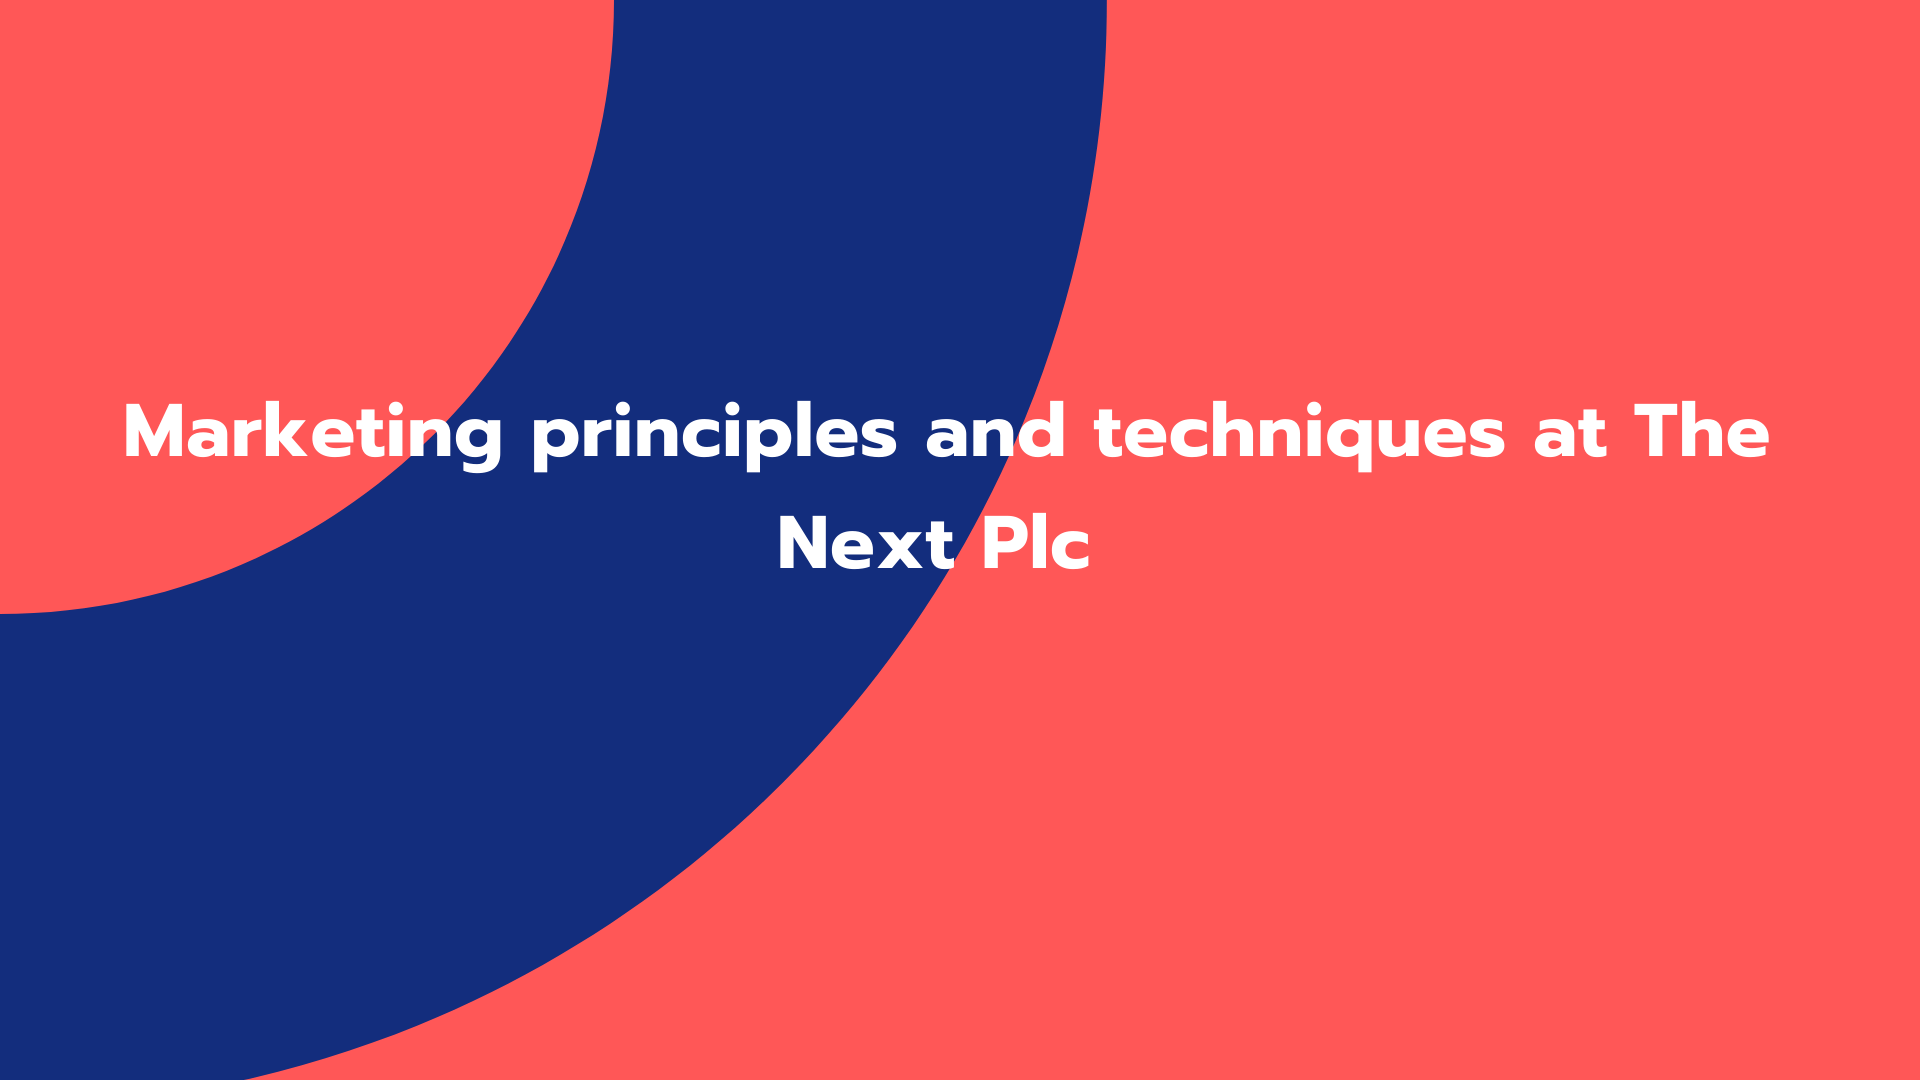 Marketing principles and techniques at The Next Plc